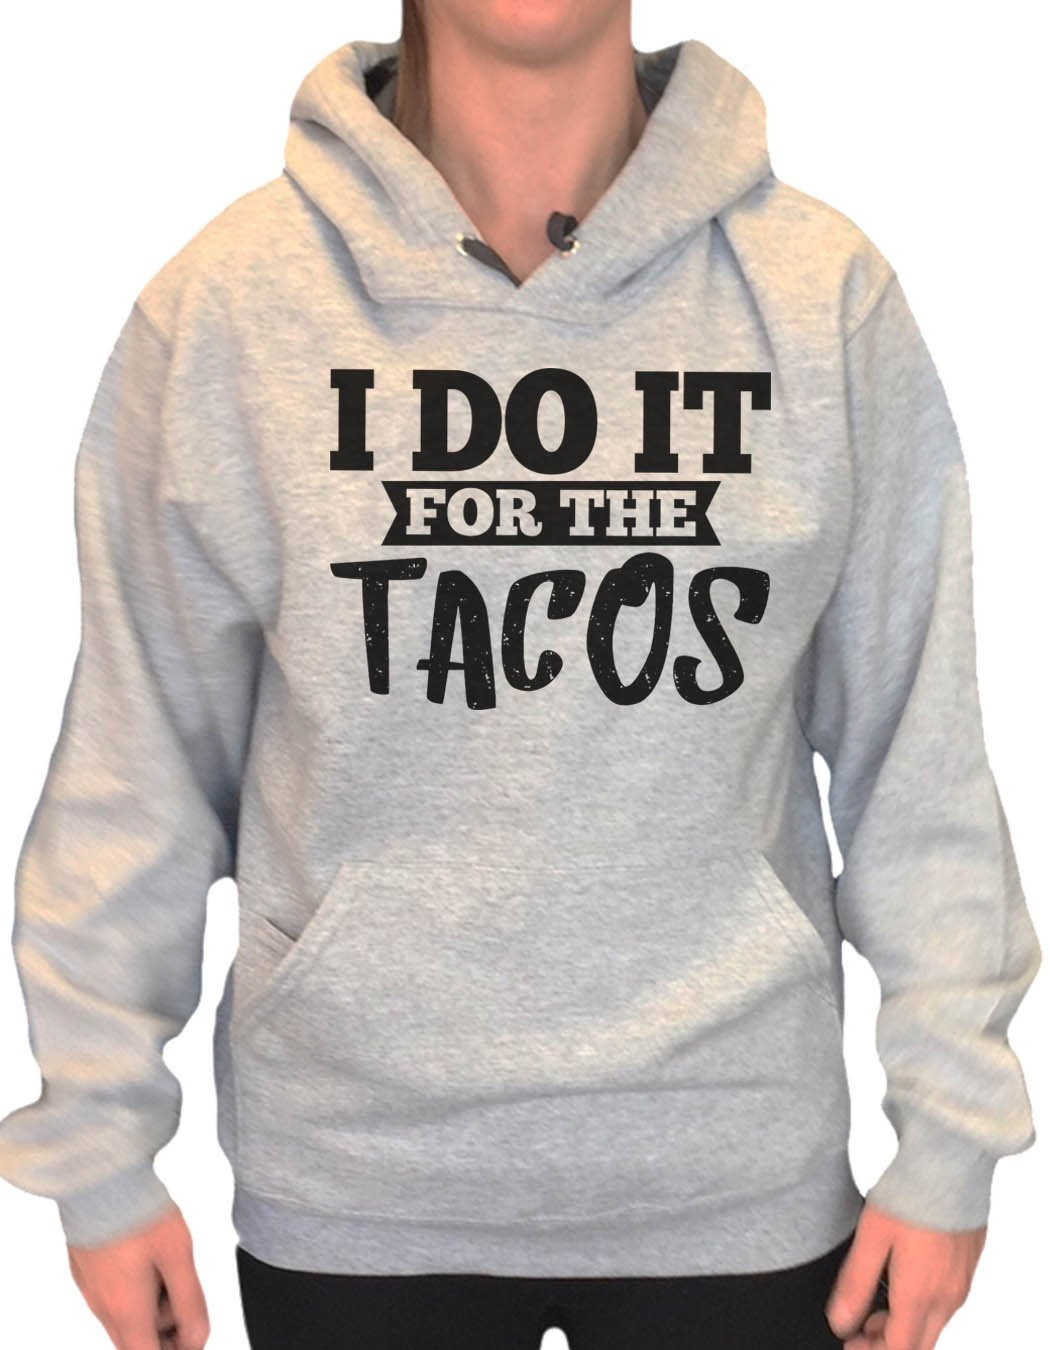 UNISEX HOODIE - I Do It For The Tacos - FUNNY MENS AND WOMENS HOODED SWEATSHIRTS - 2116 Funny Shirt Small / Heather Grey